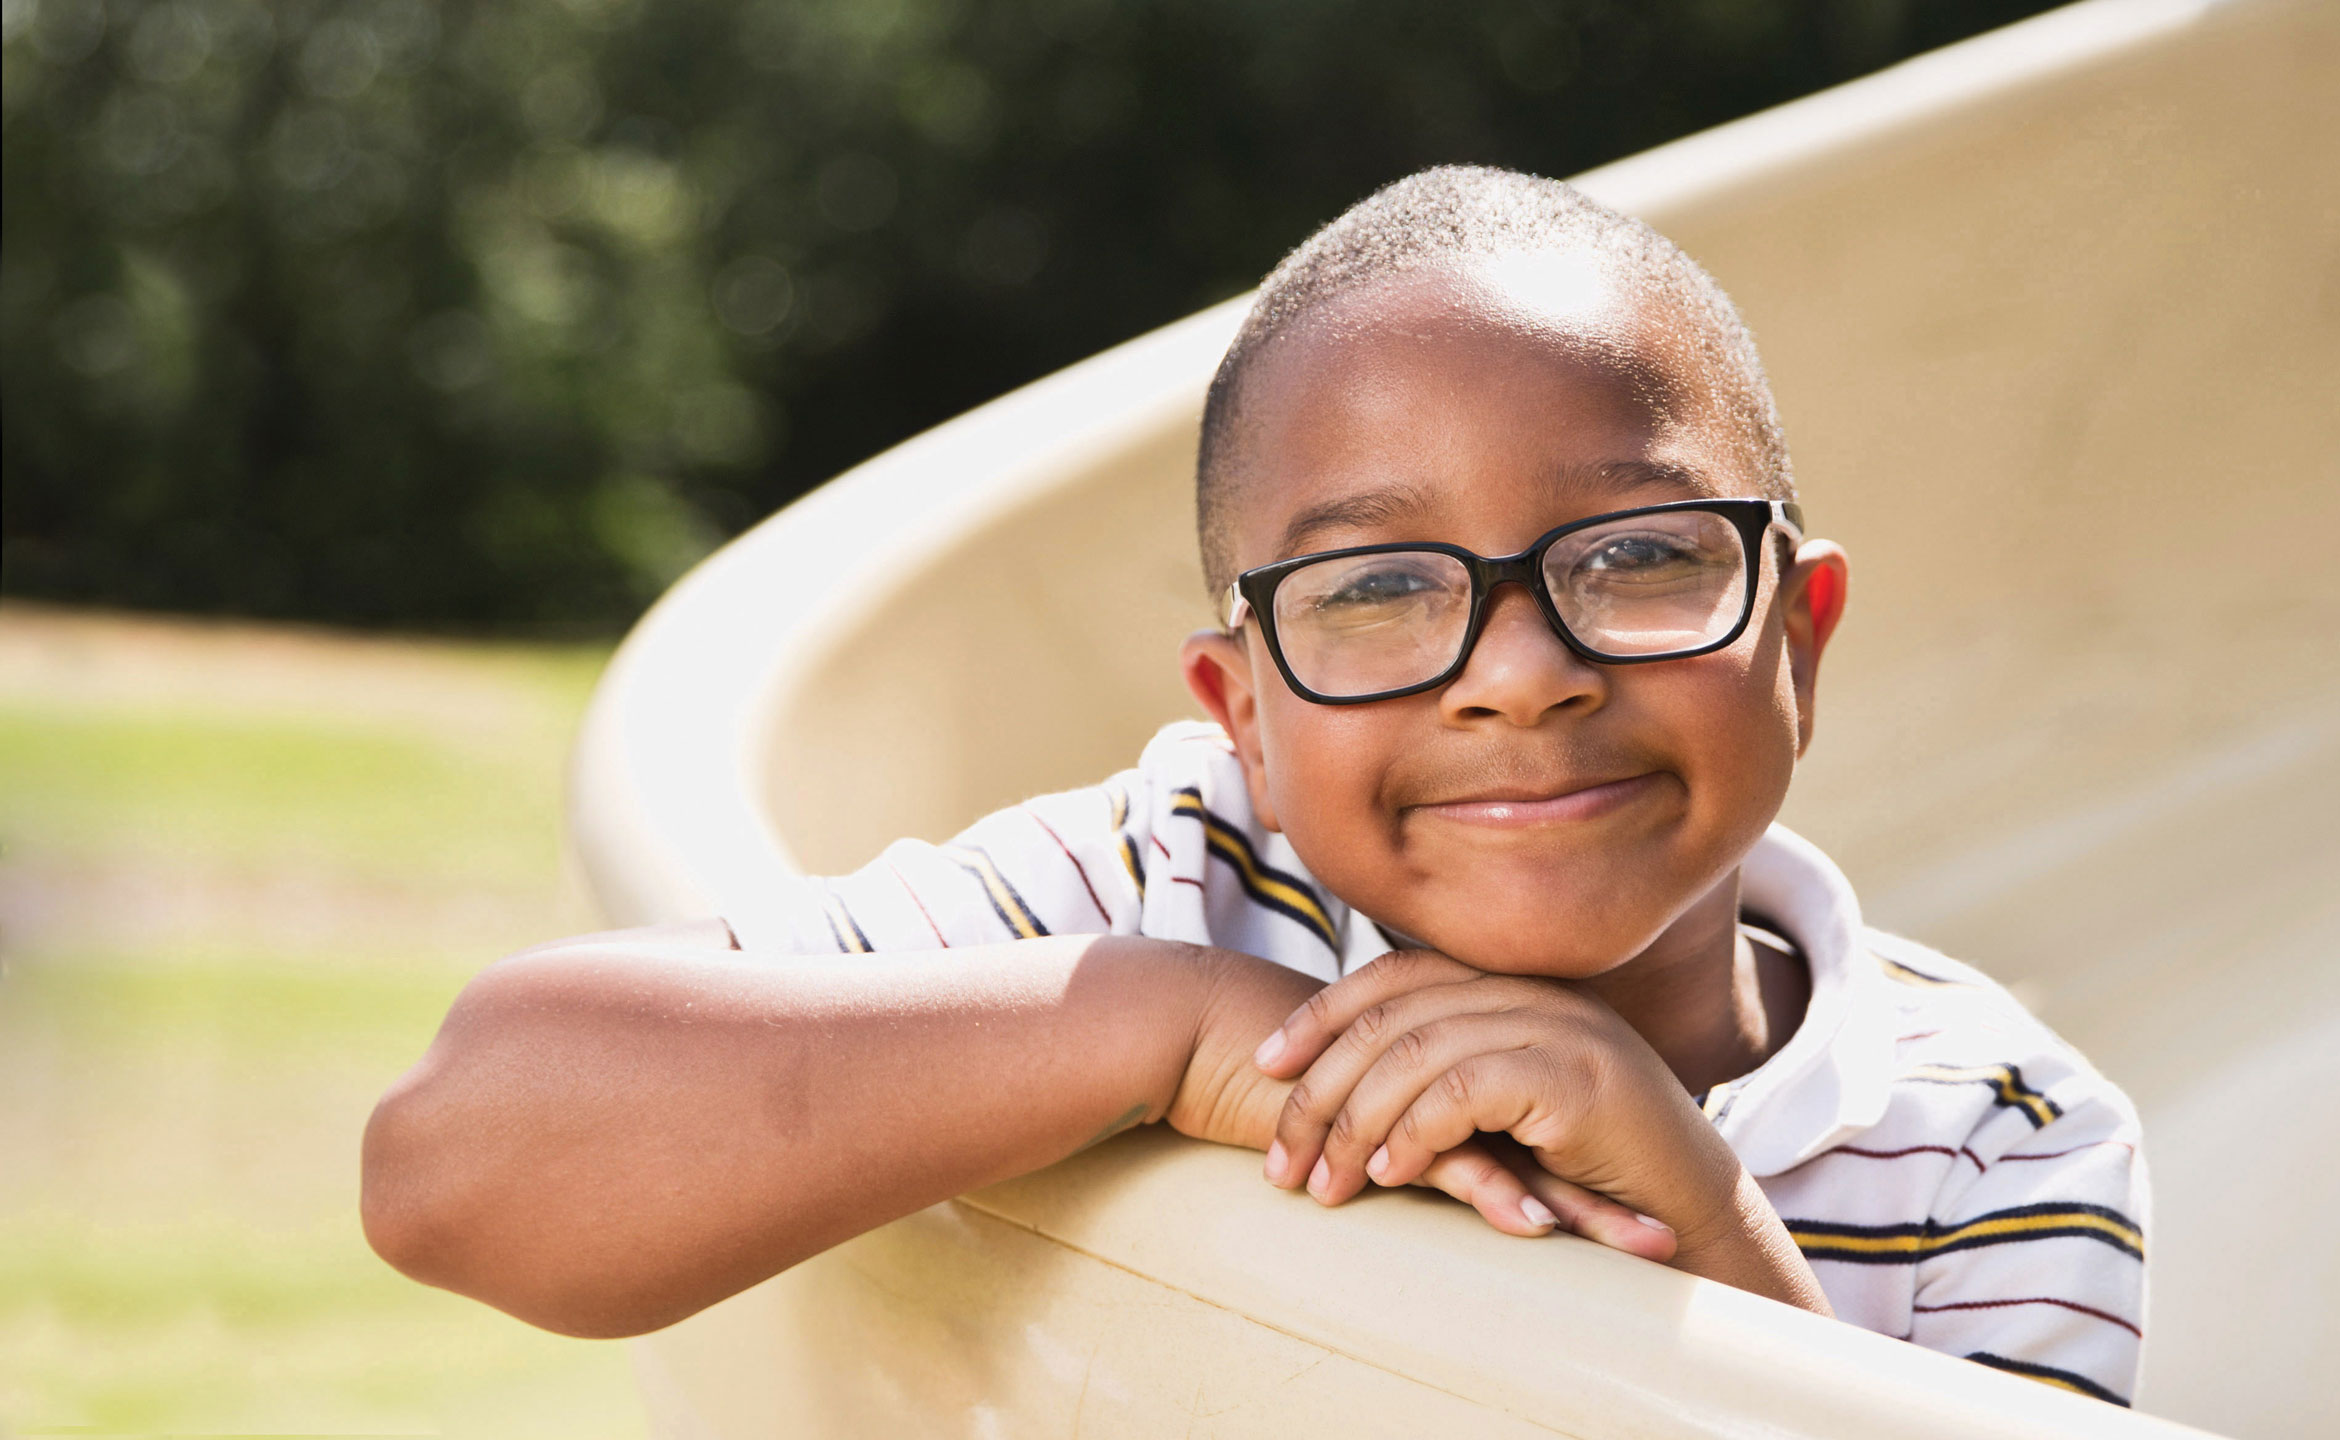 cute kid with glasses - parthenon publishing